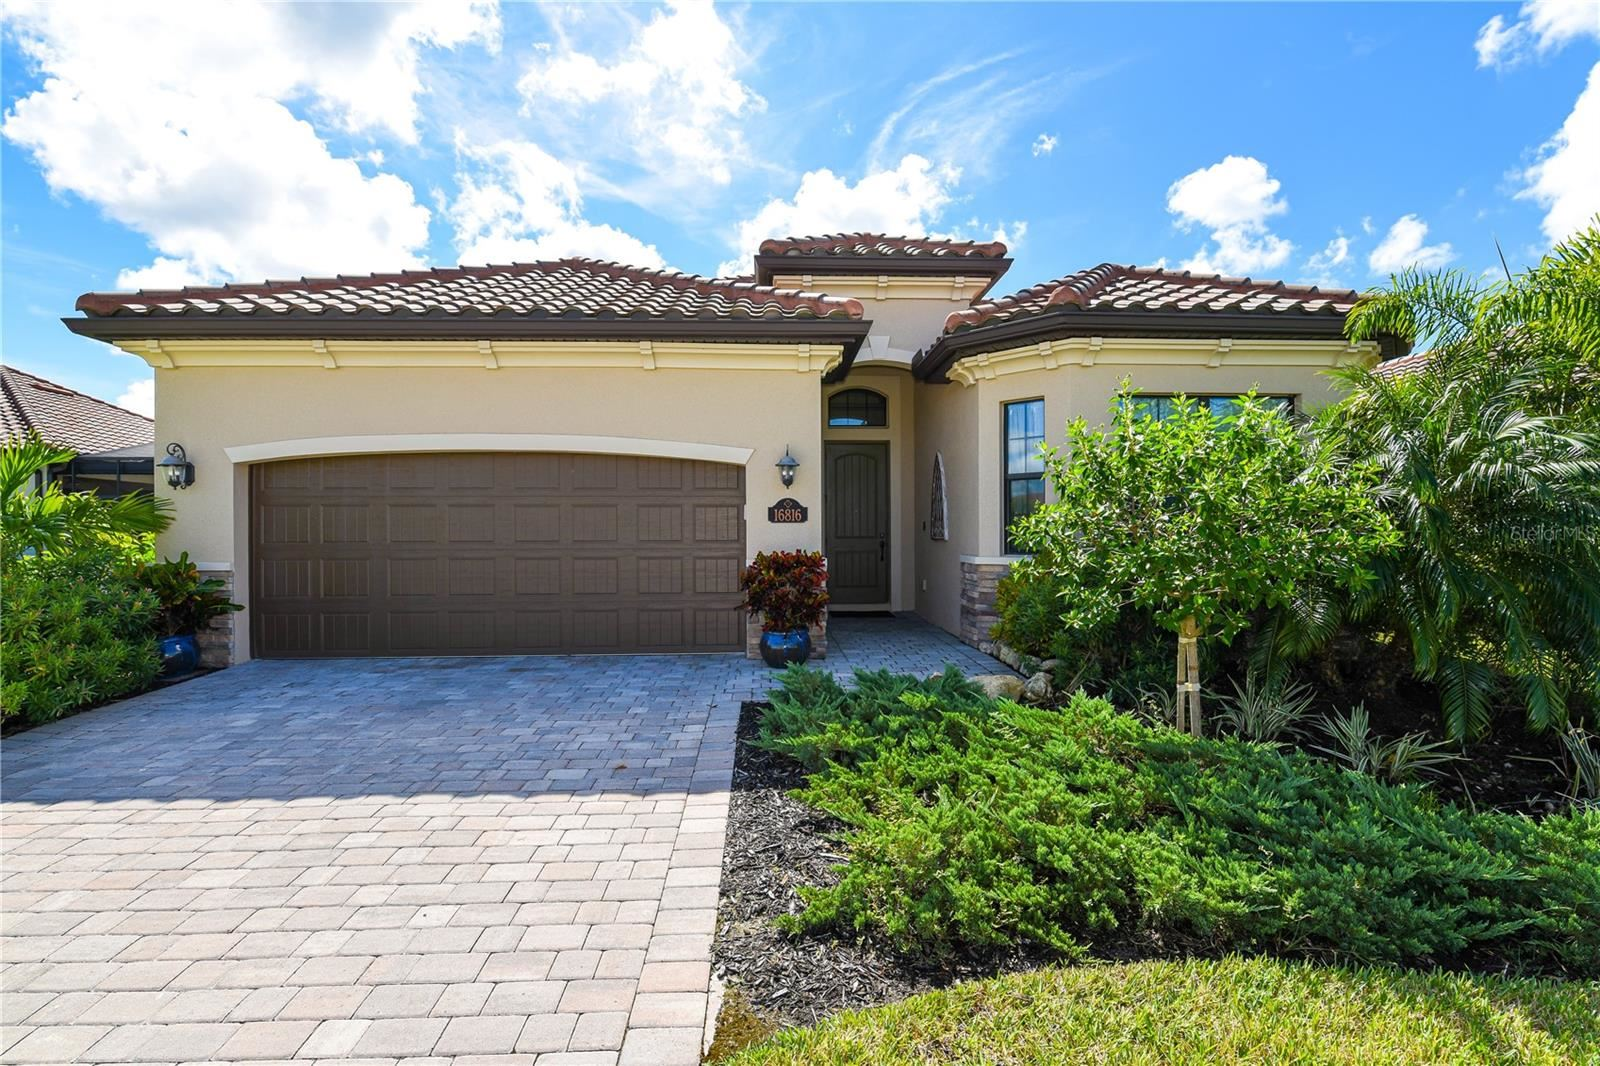 Photo of 16816 BWANA PLACE, LAKEWOOD RANCH, FL 34211 (MLS # A4513050)